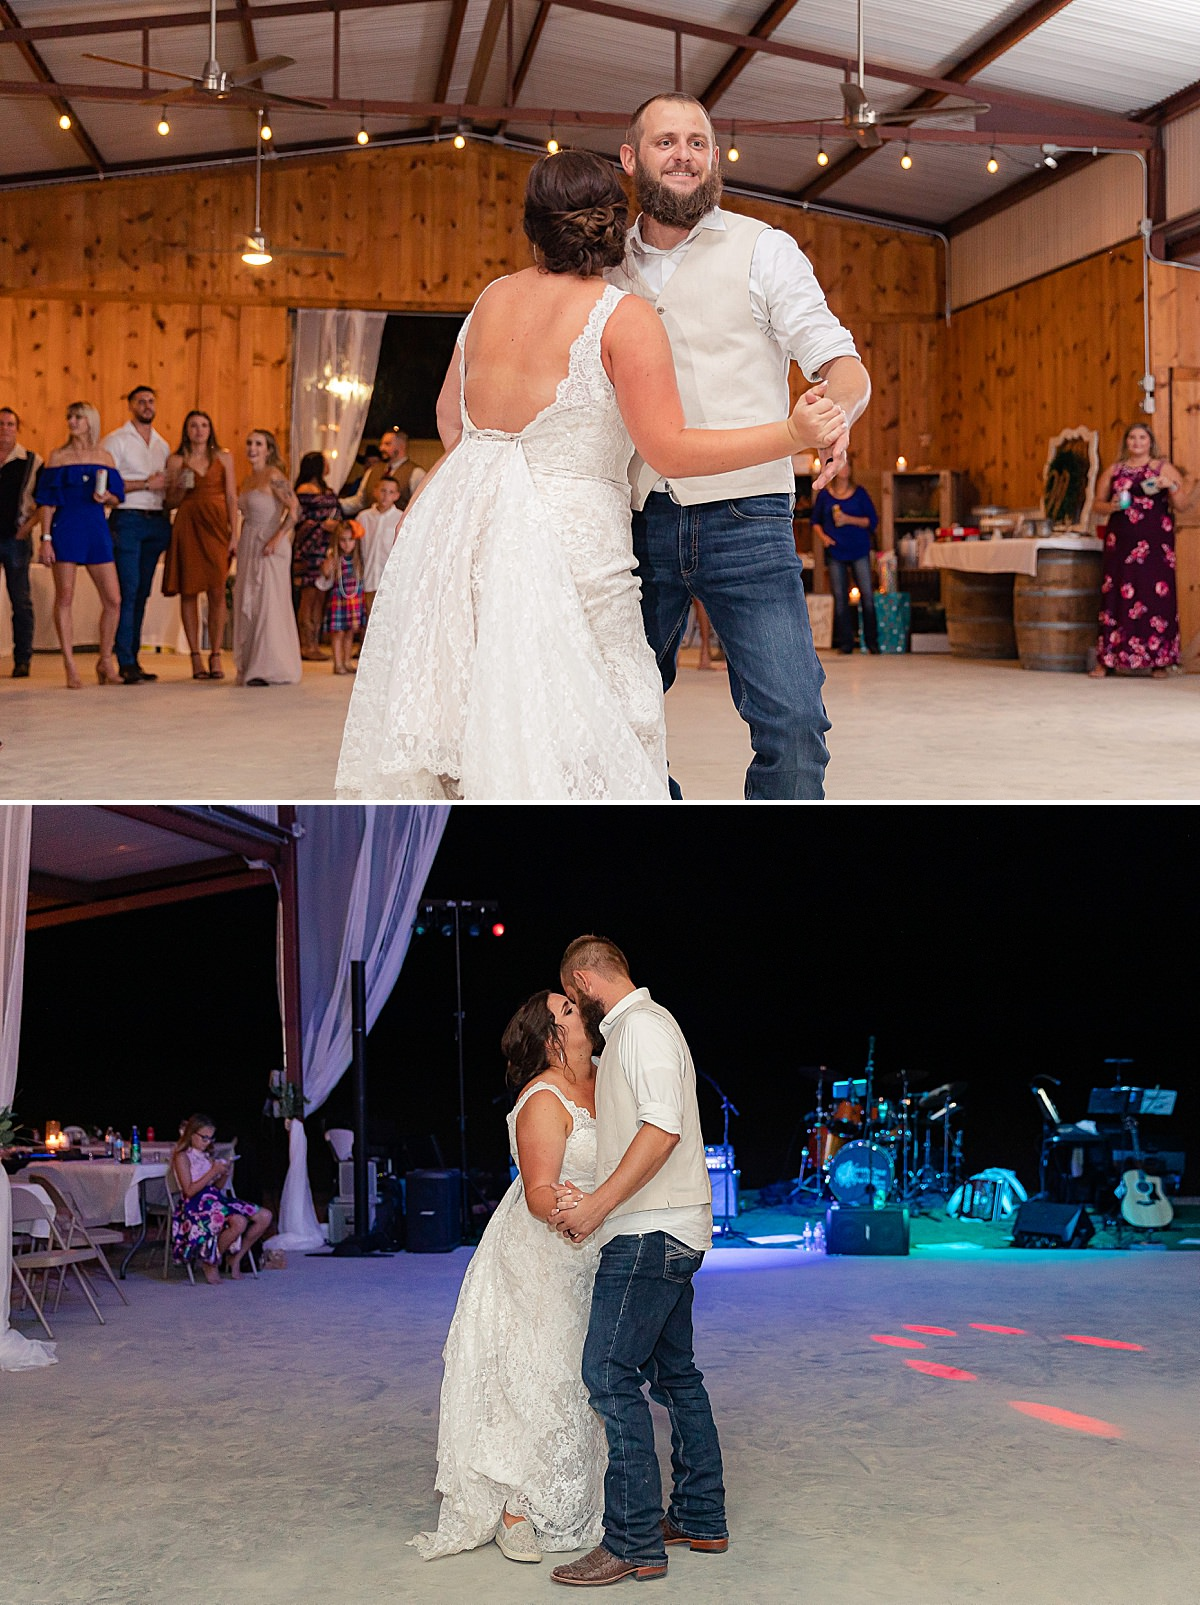 Rustic-Texas-Wedding-Hollow-Creek-Ranch-Carly-Barton-Photography_0058.jpg